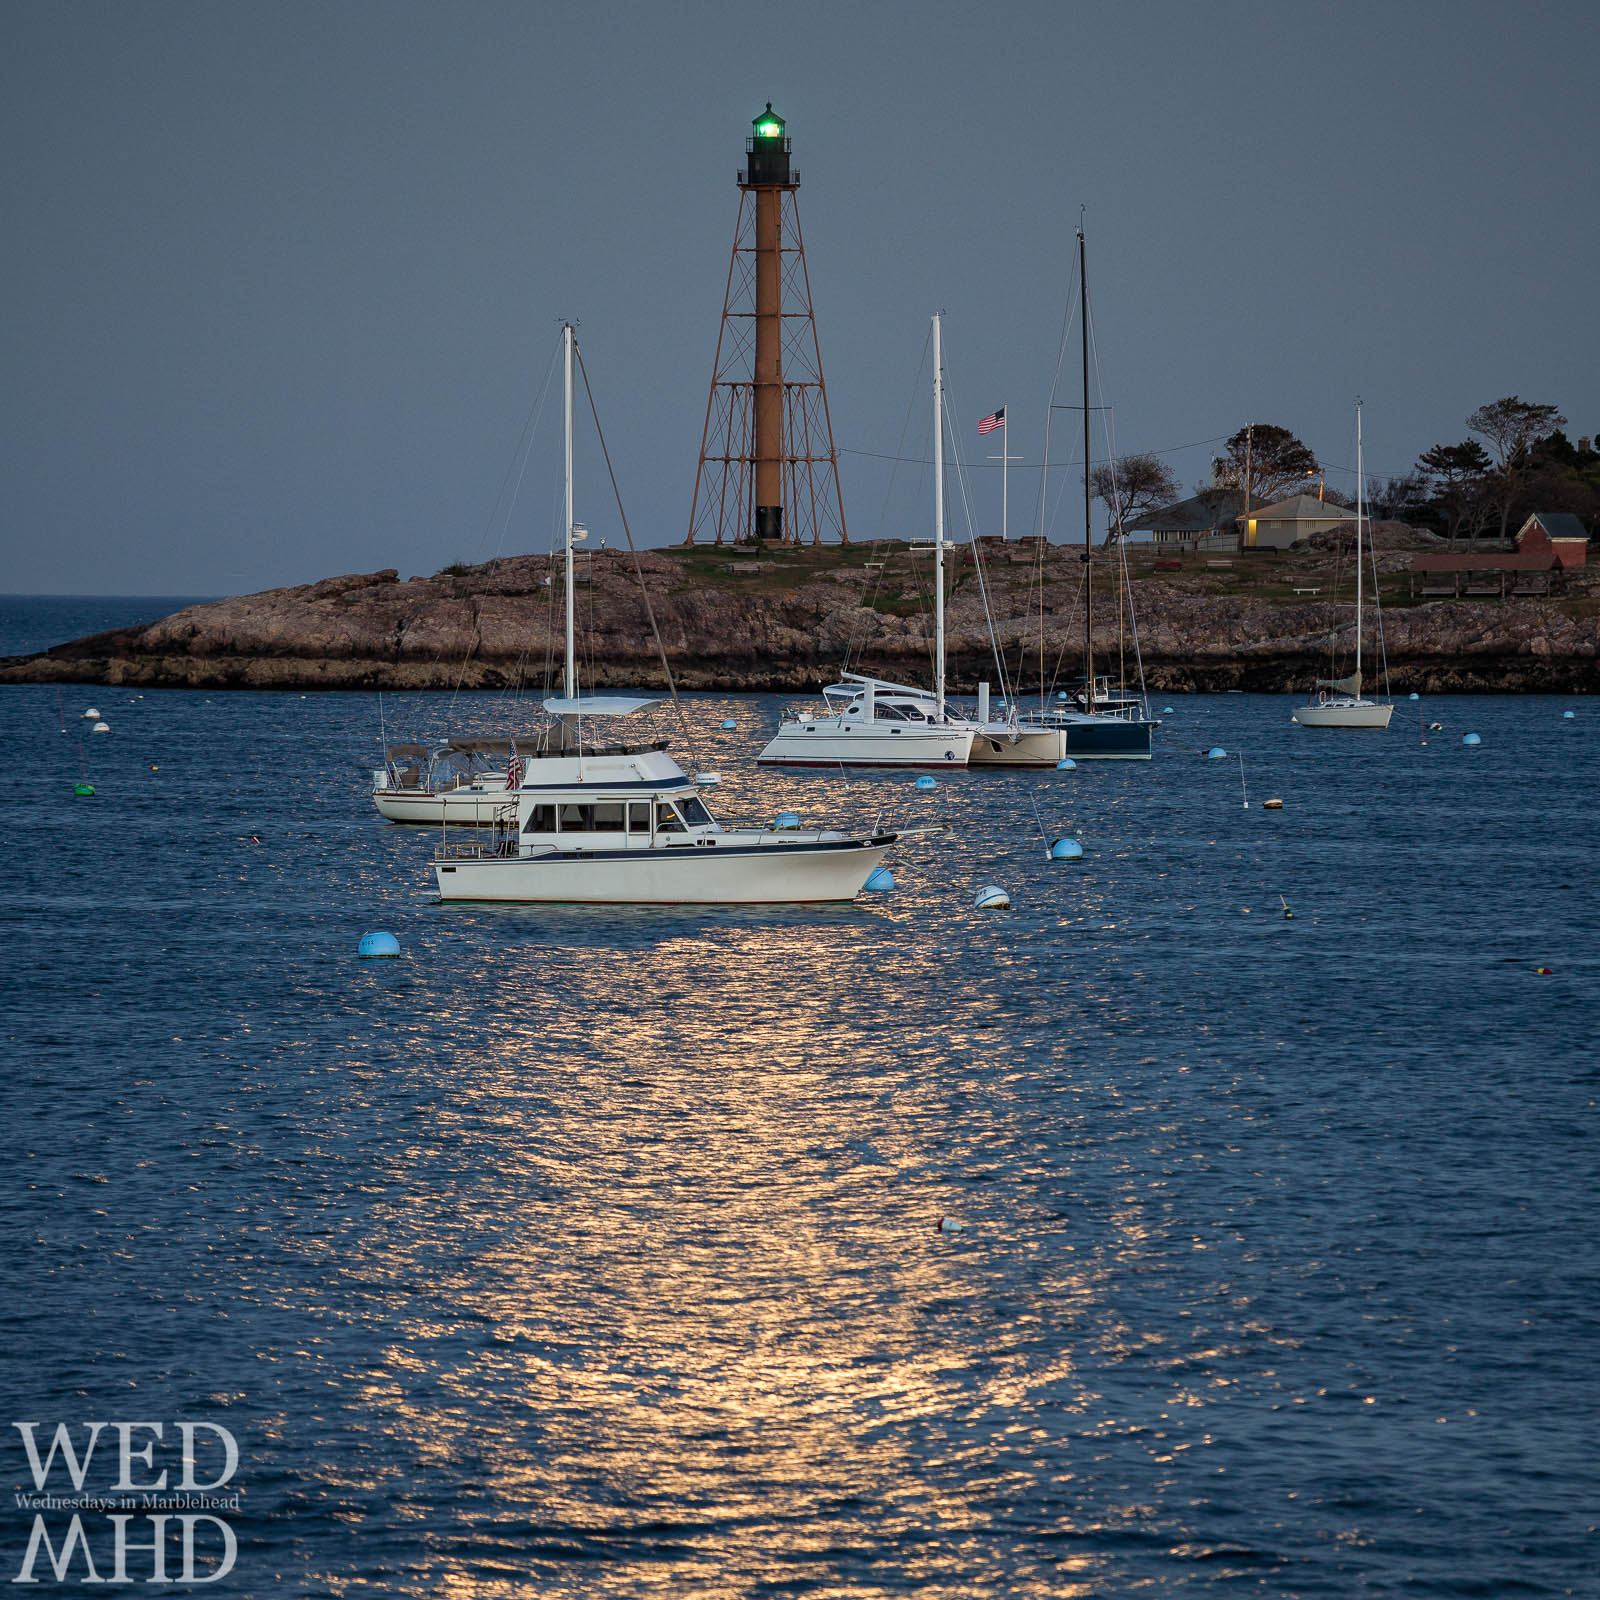 Boats in Marblehead Harbor are moored by moonlight under the light of the Harvest Moon